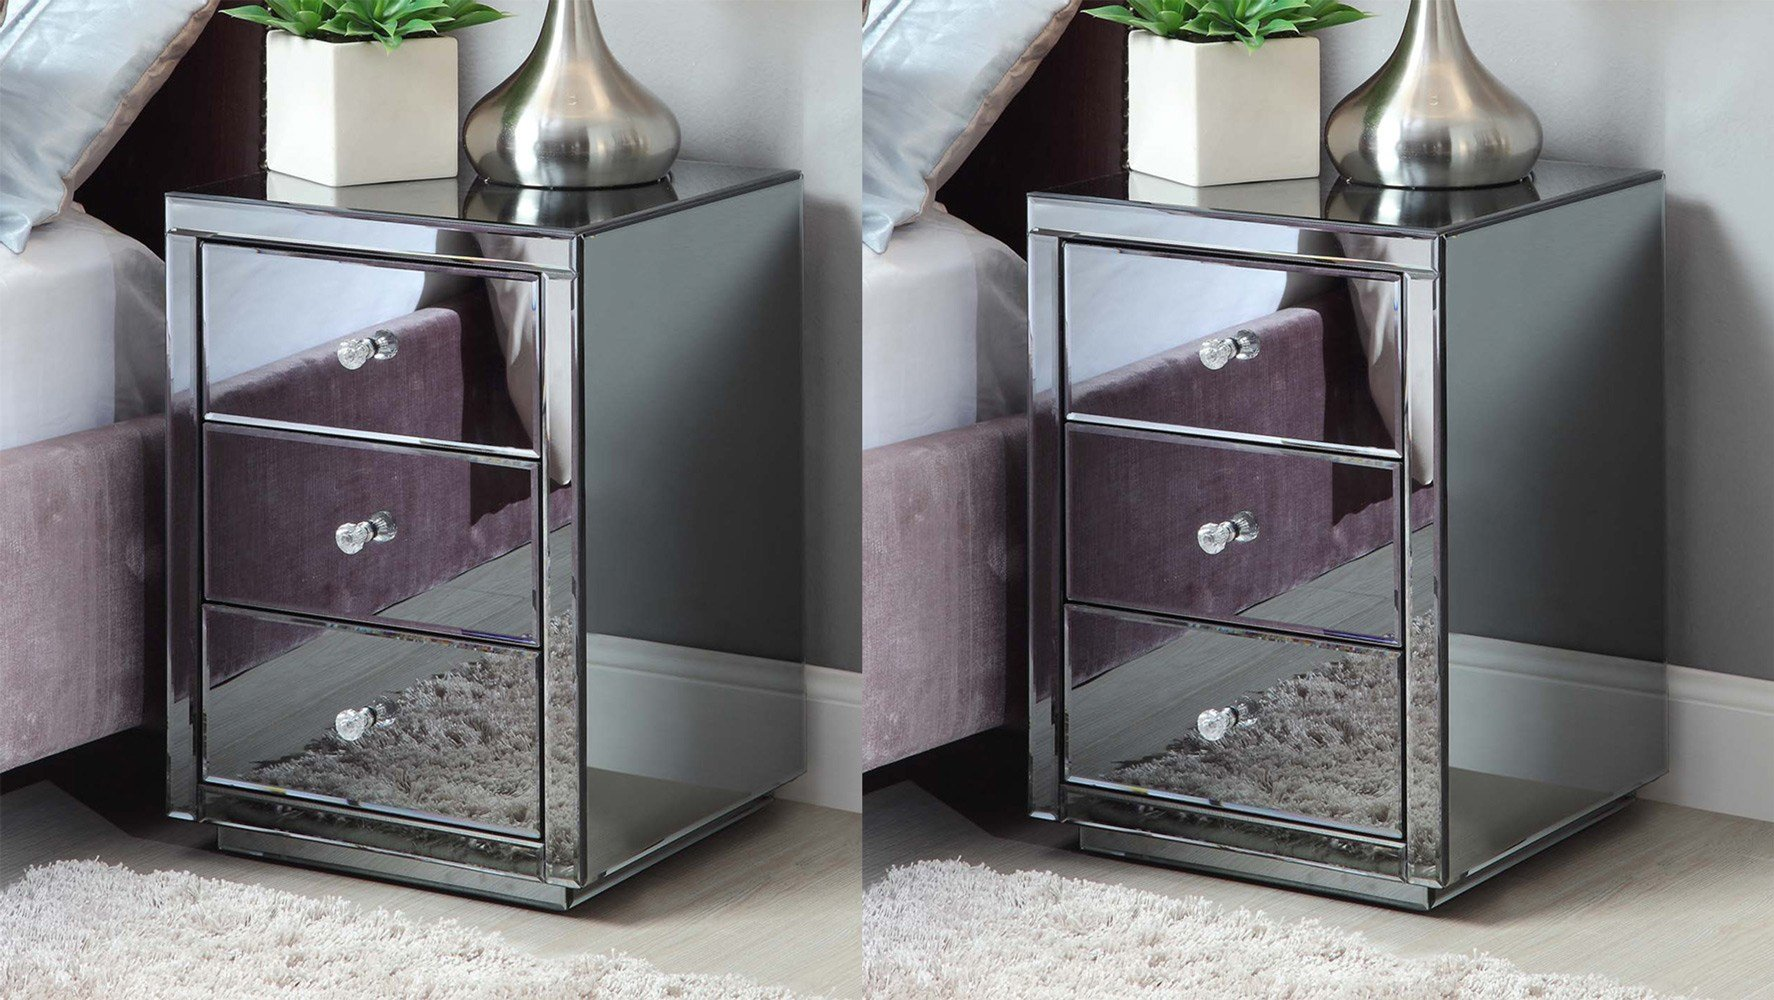 Best Pair Vegas Smoke Mirrored Bedside Table Chest Mirror Furniture Ebay With Pictures